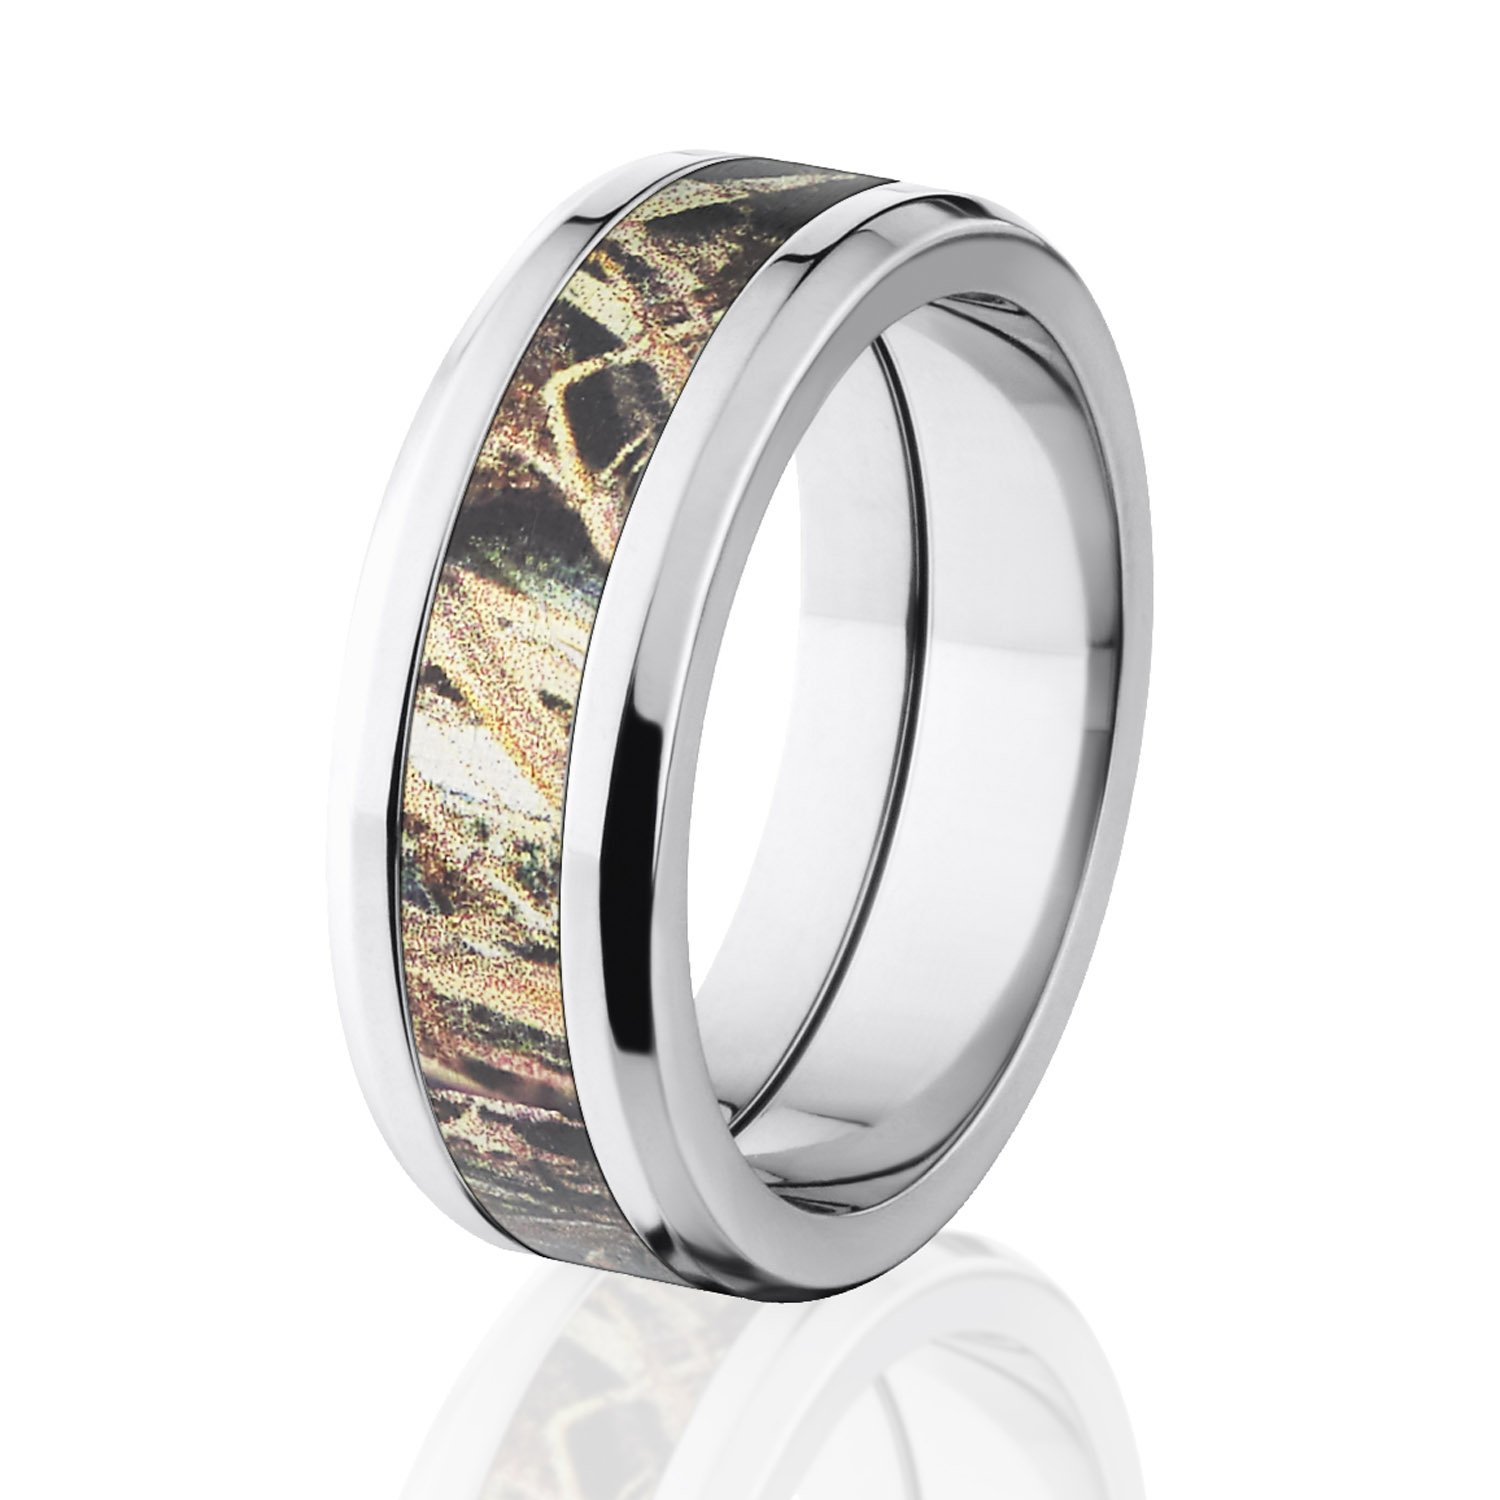 duck blind mossy oak camo rings camouflage wedding rings camo bands amazoncom - Pink Camo Wedding Ring Sets